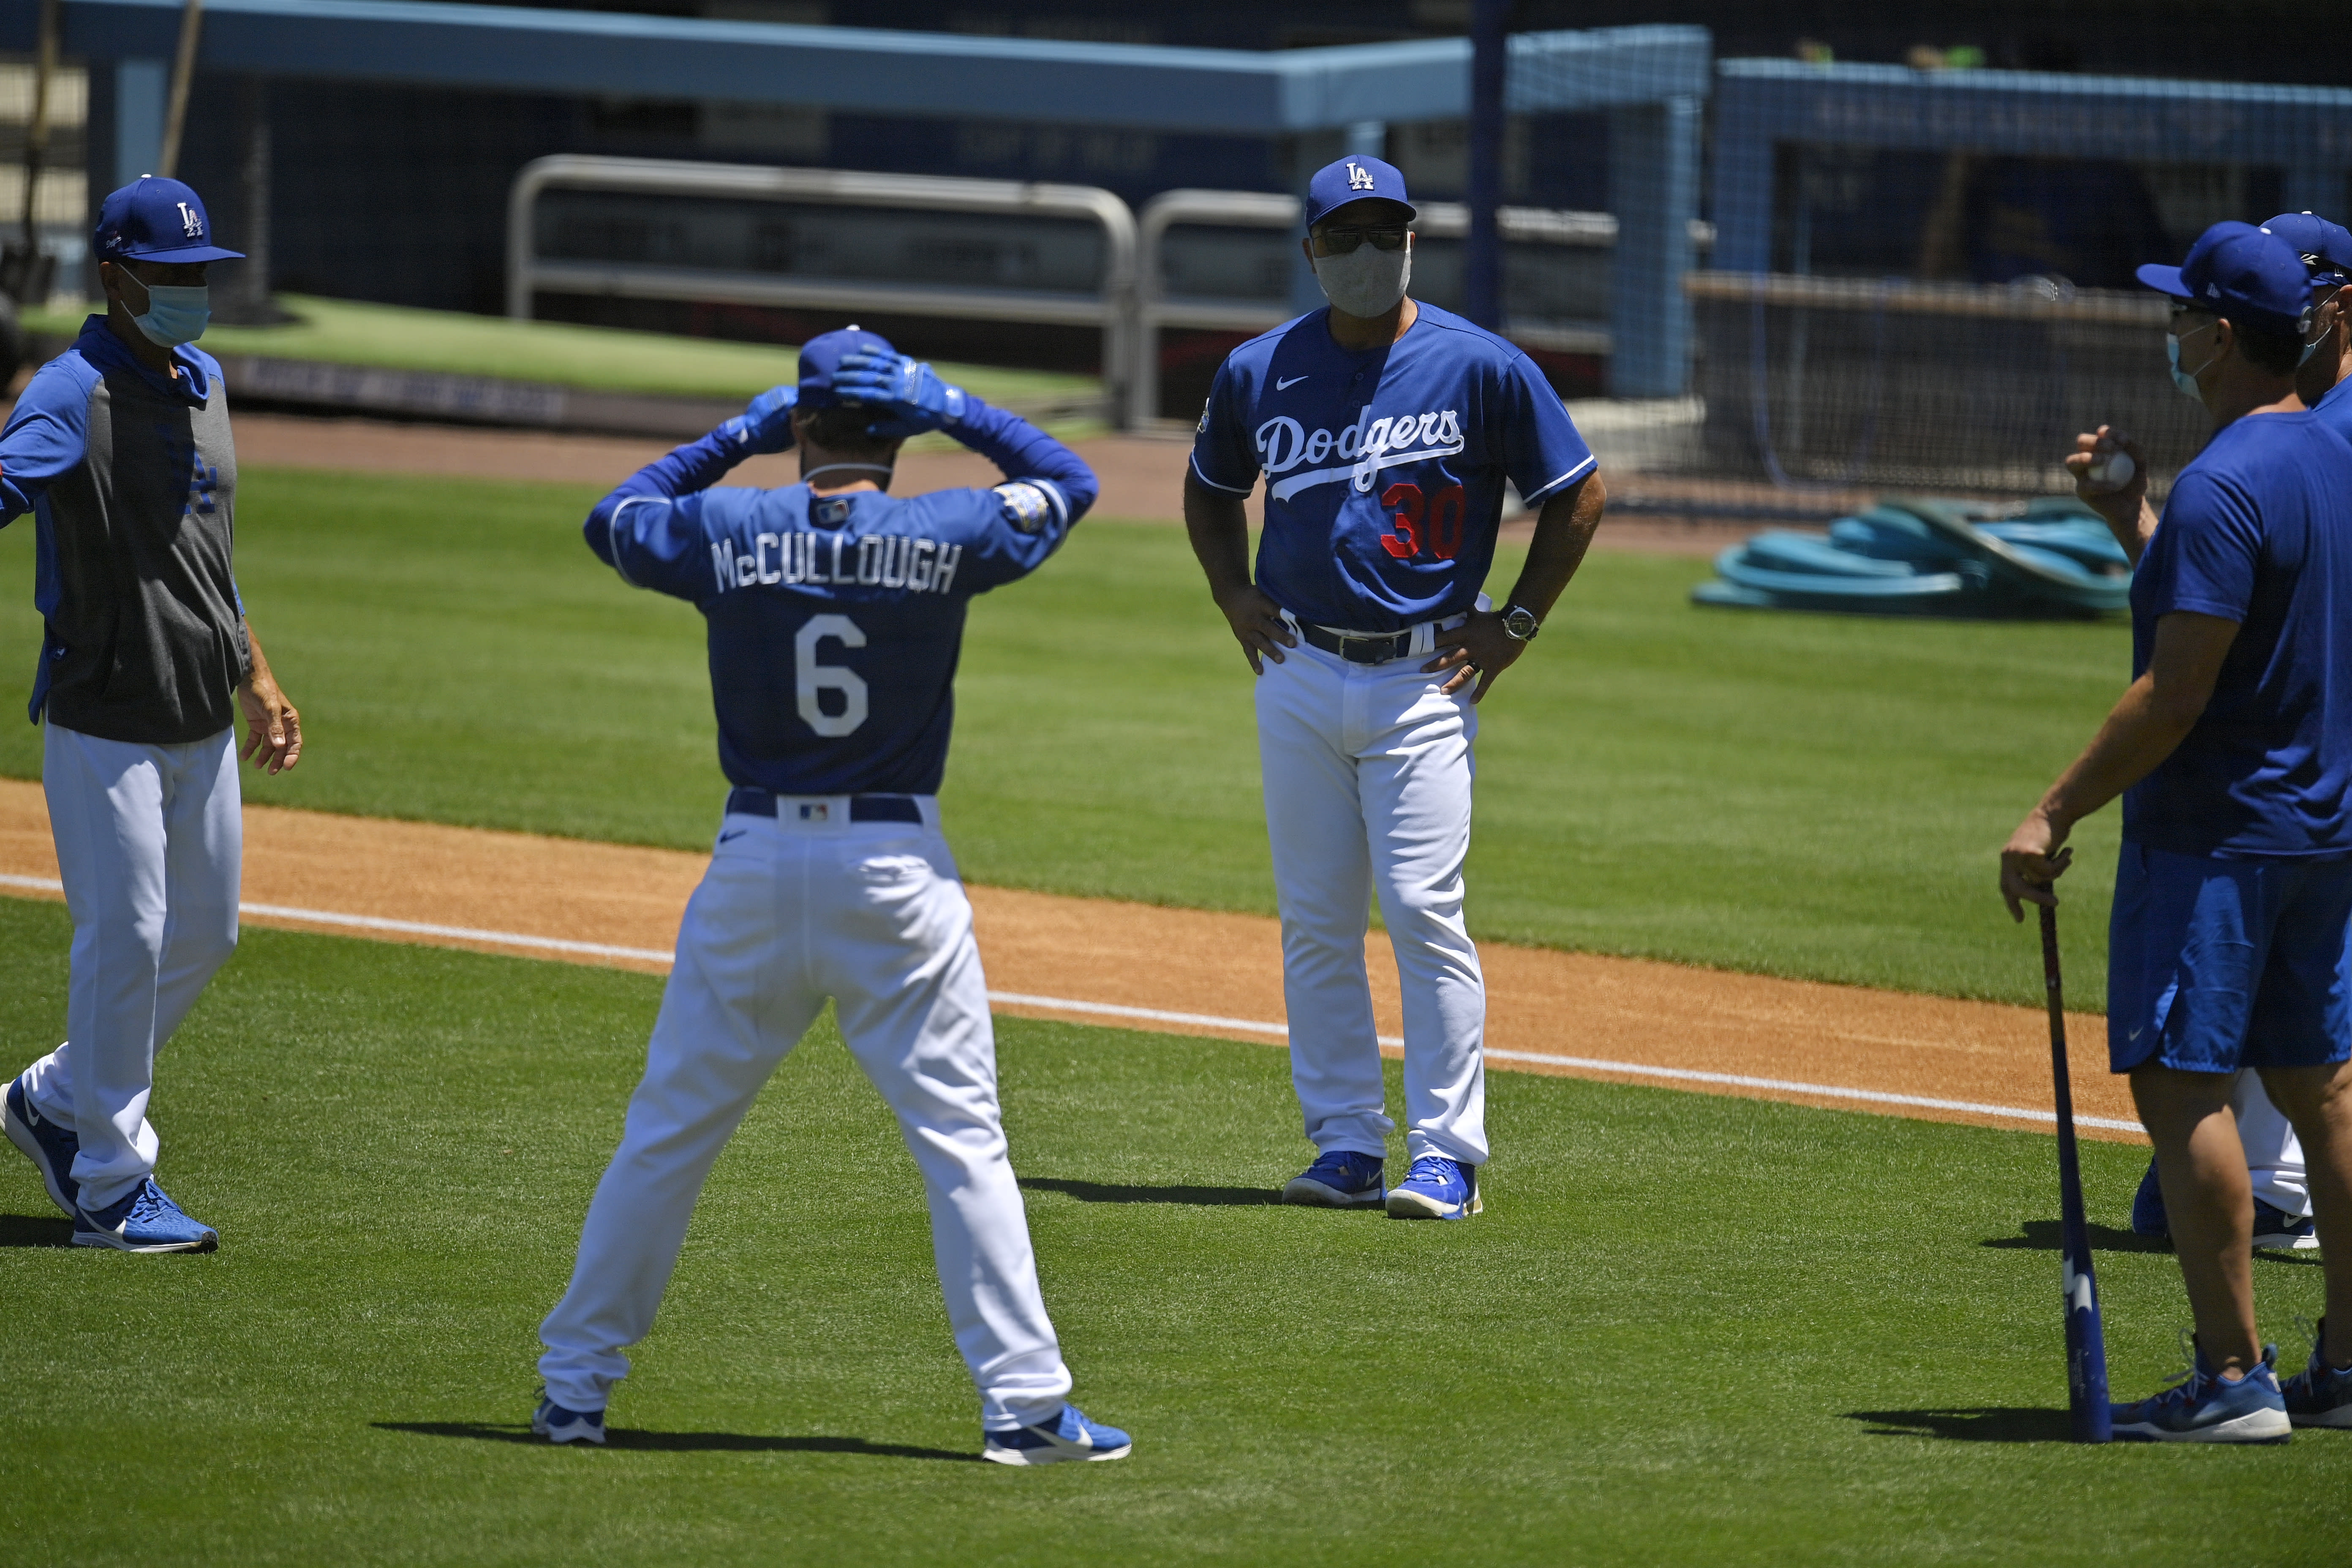 Los Angeles Dodgers manager Dave Roberts (30) talks with members of the team during the restart of spring training Friday, July 3, 2020, in Los Angeles. (AP Photo/Mark J. Terrill)